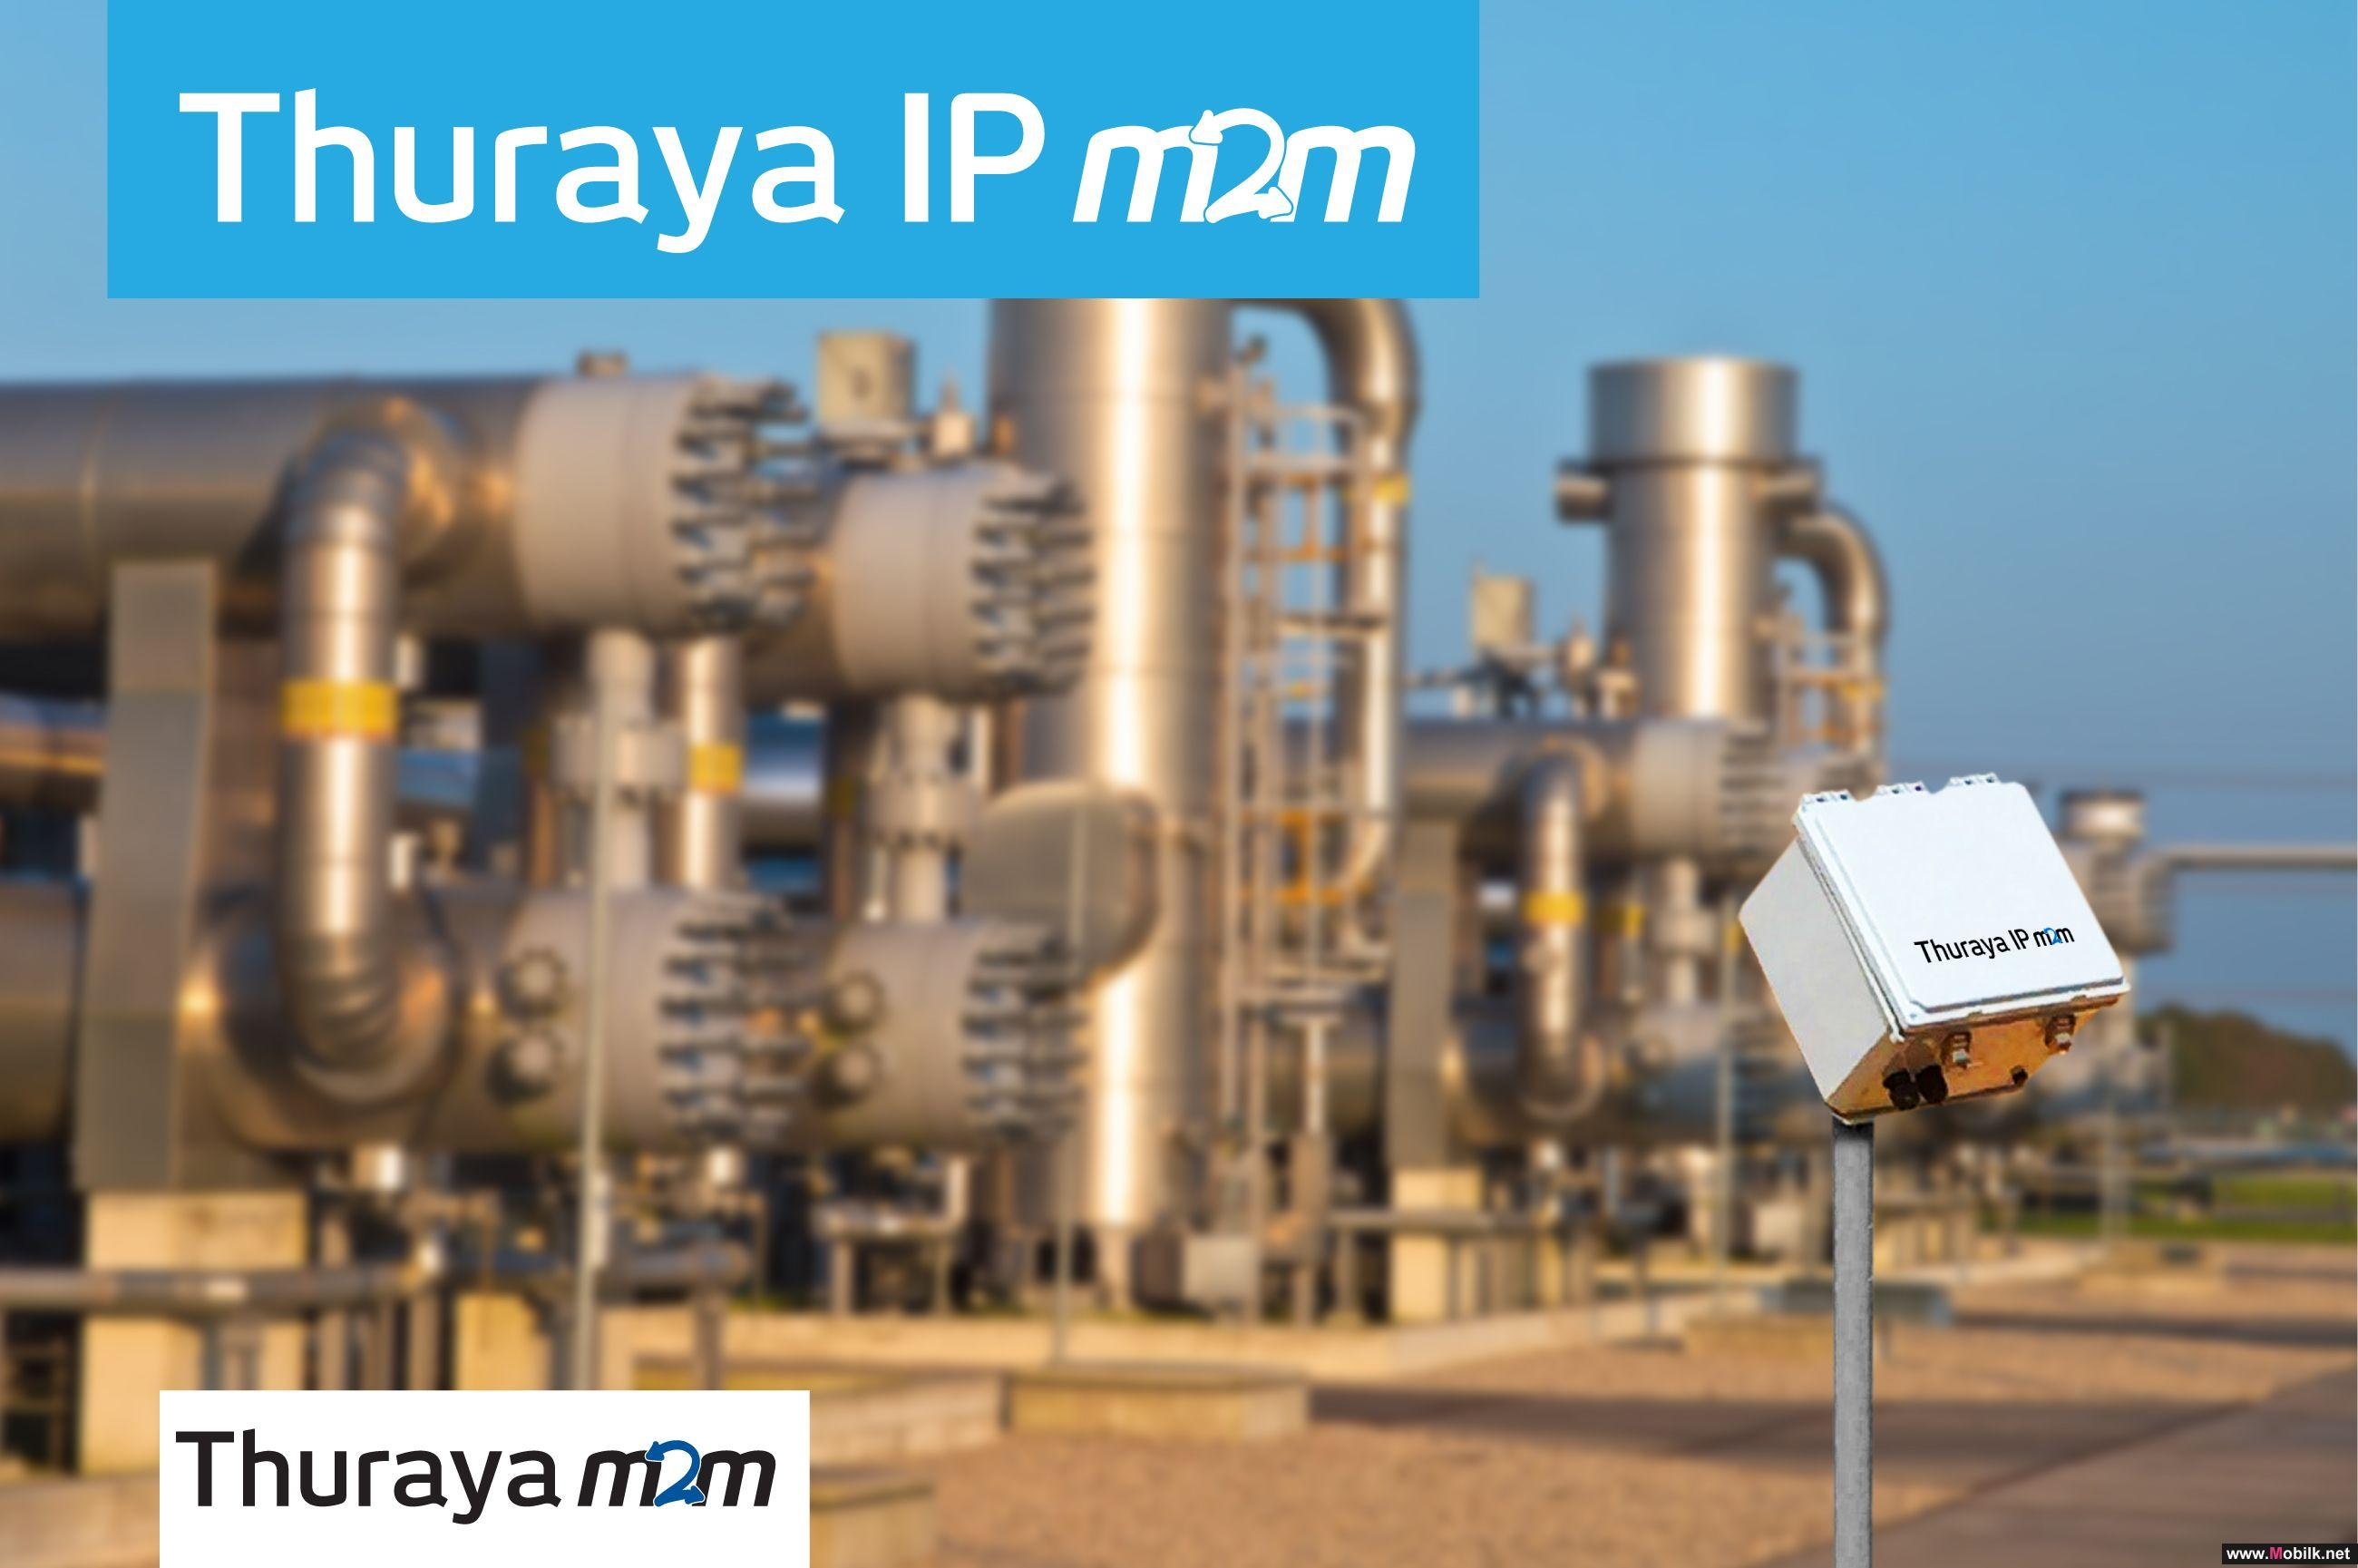 Thuraya IP M2M Service launched to connect the Internet of Remote Things